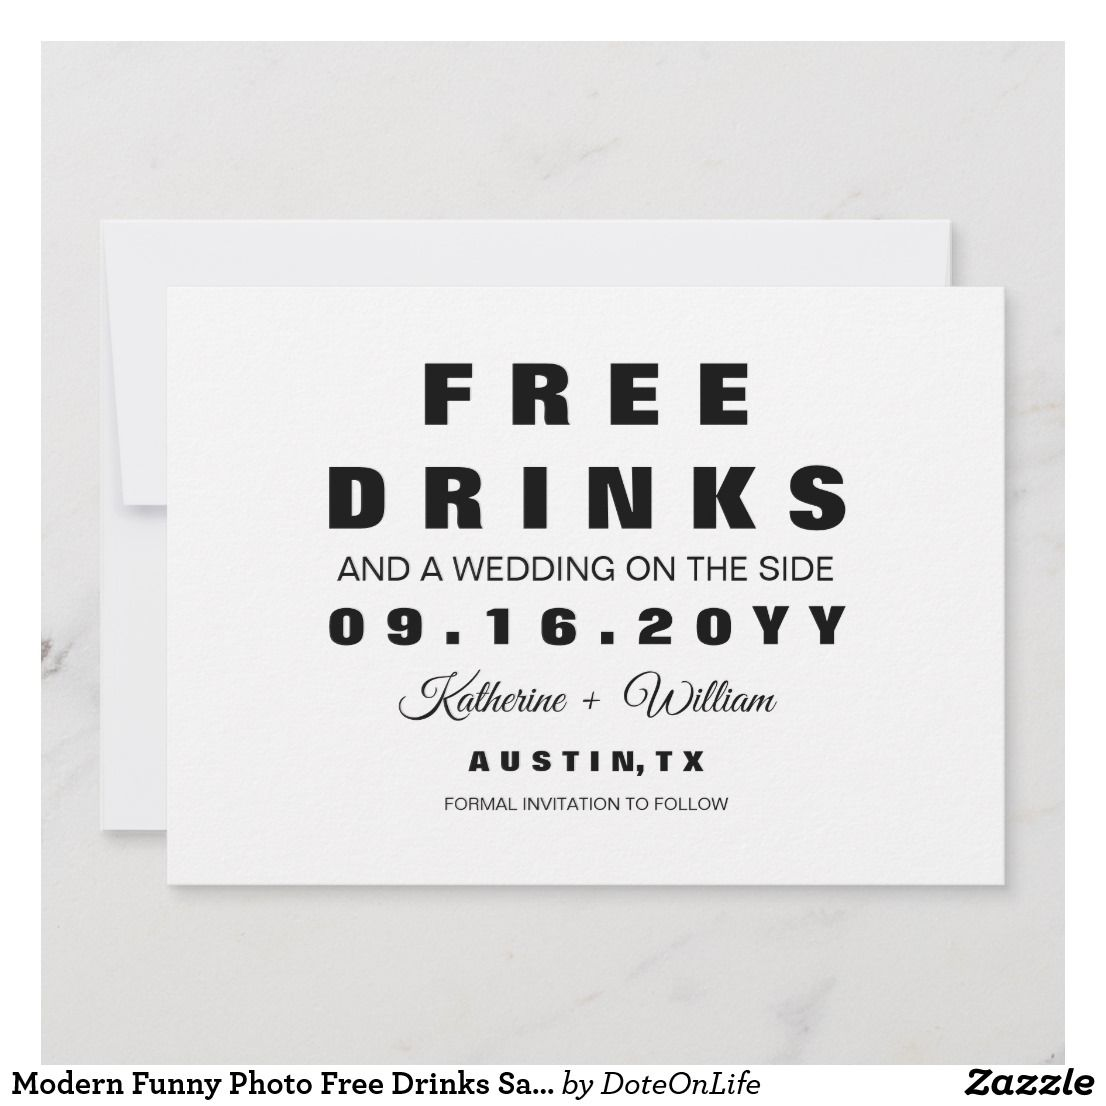 Modern Funny Photo Free Drinks Save The Date Card Zazzle Com Save The Date Cards Funny Save The Dates Save The Date Examples